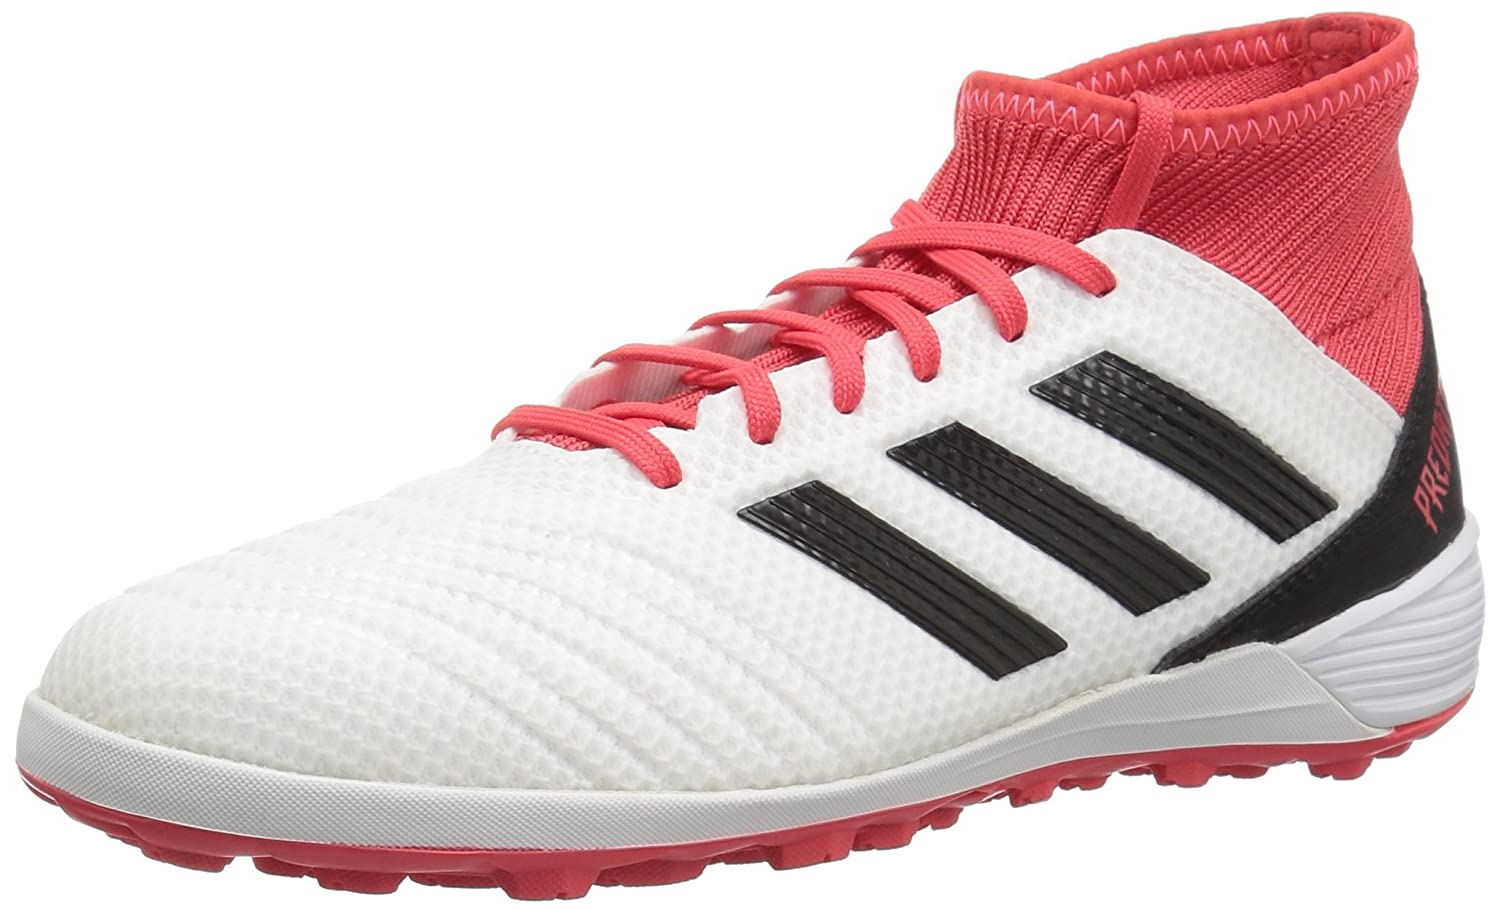 adidas Men's Ace Tango 18.3 Tf B072882HWV 10.5 M US|White/Core Black/Real Coral